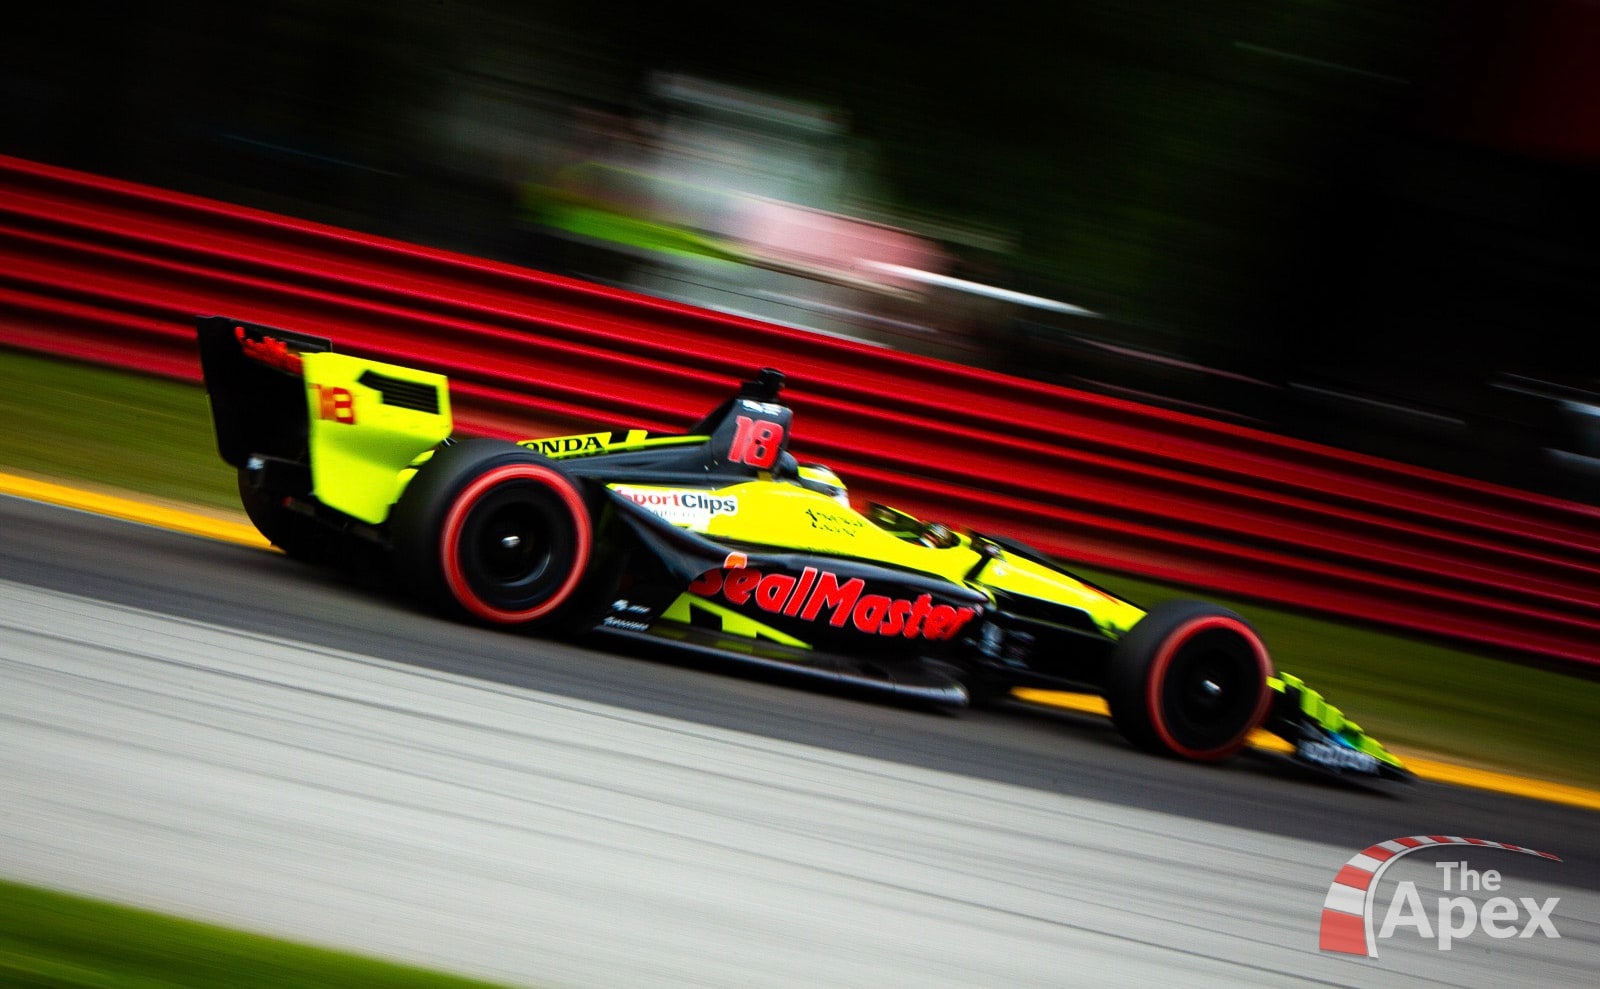 Sebastien Bourdais charges from last during 2018 Honda Indy 200